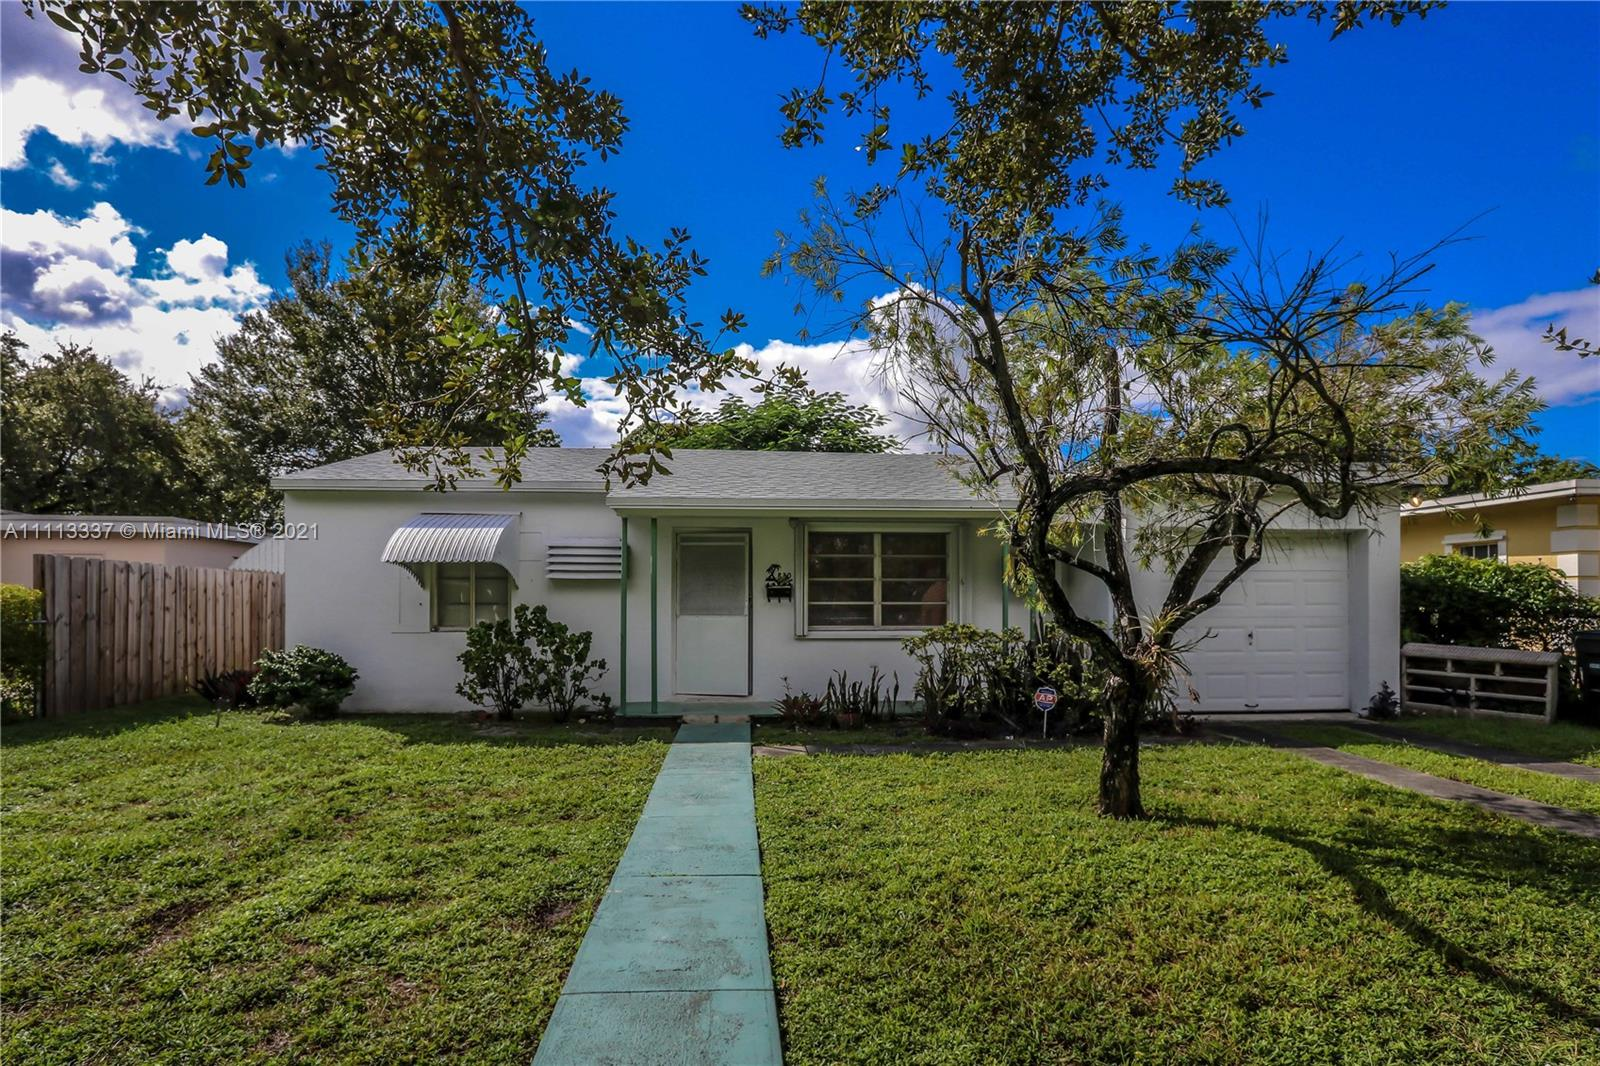 Single Family Home,For Rent,830 NW 126th St #-, North Miami, Florida 33168,Brickell,realty,broker,condos near me